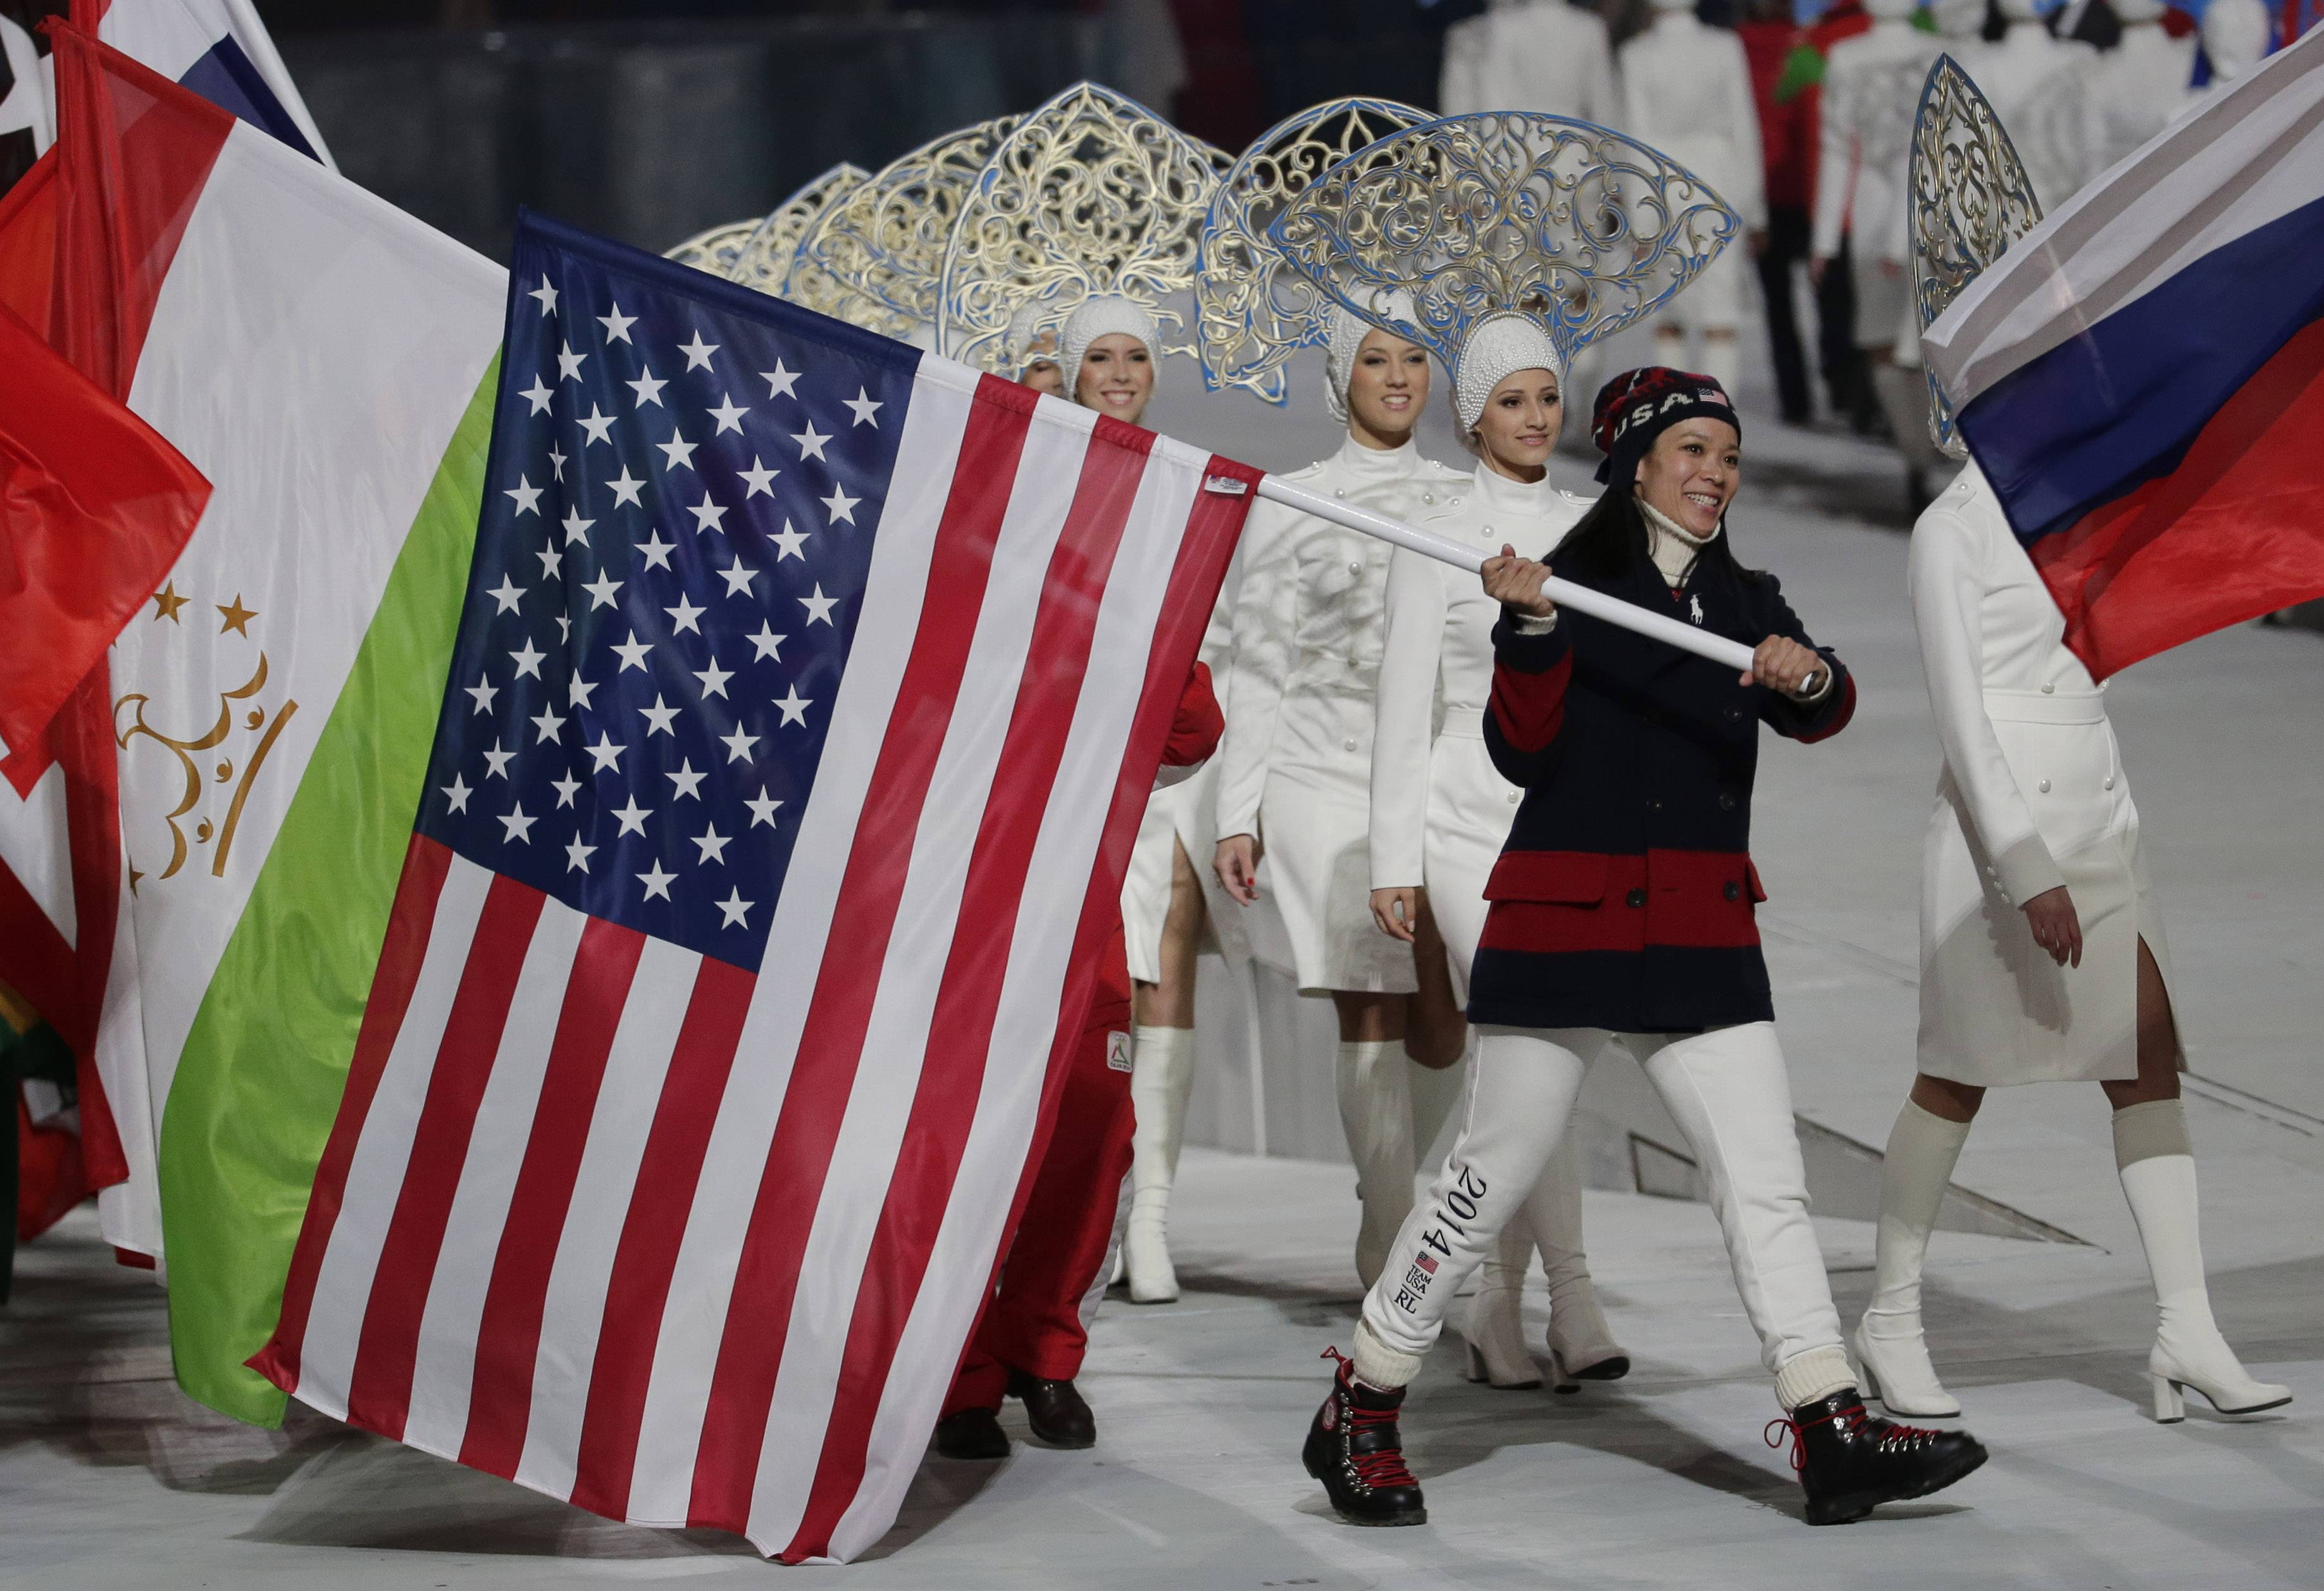 United States' Julie Chu carries her nation's flag while participating in the closing ceremony of the 2014 Winter Olympics, Sunday, Feb. 23, 2014, in Sochi, Russia.